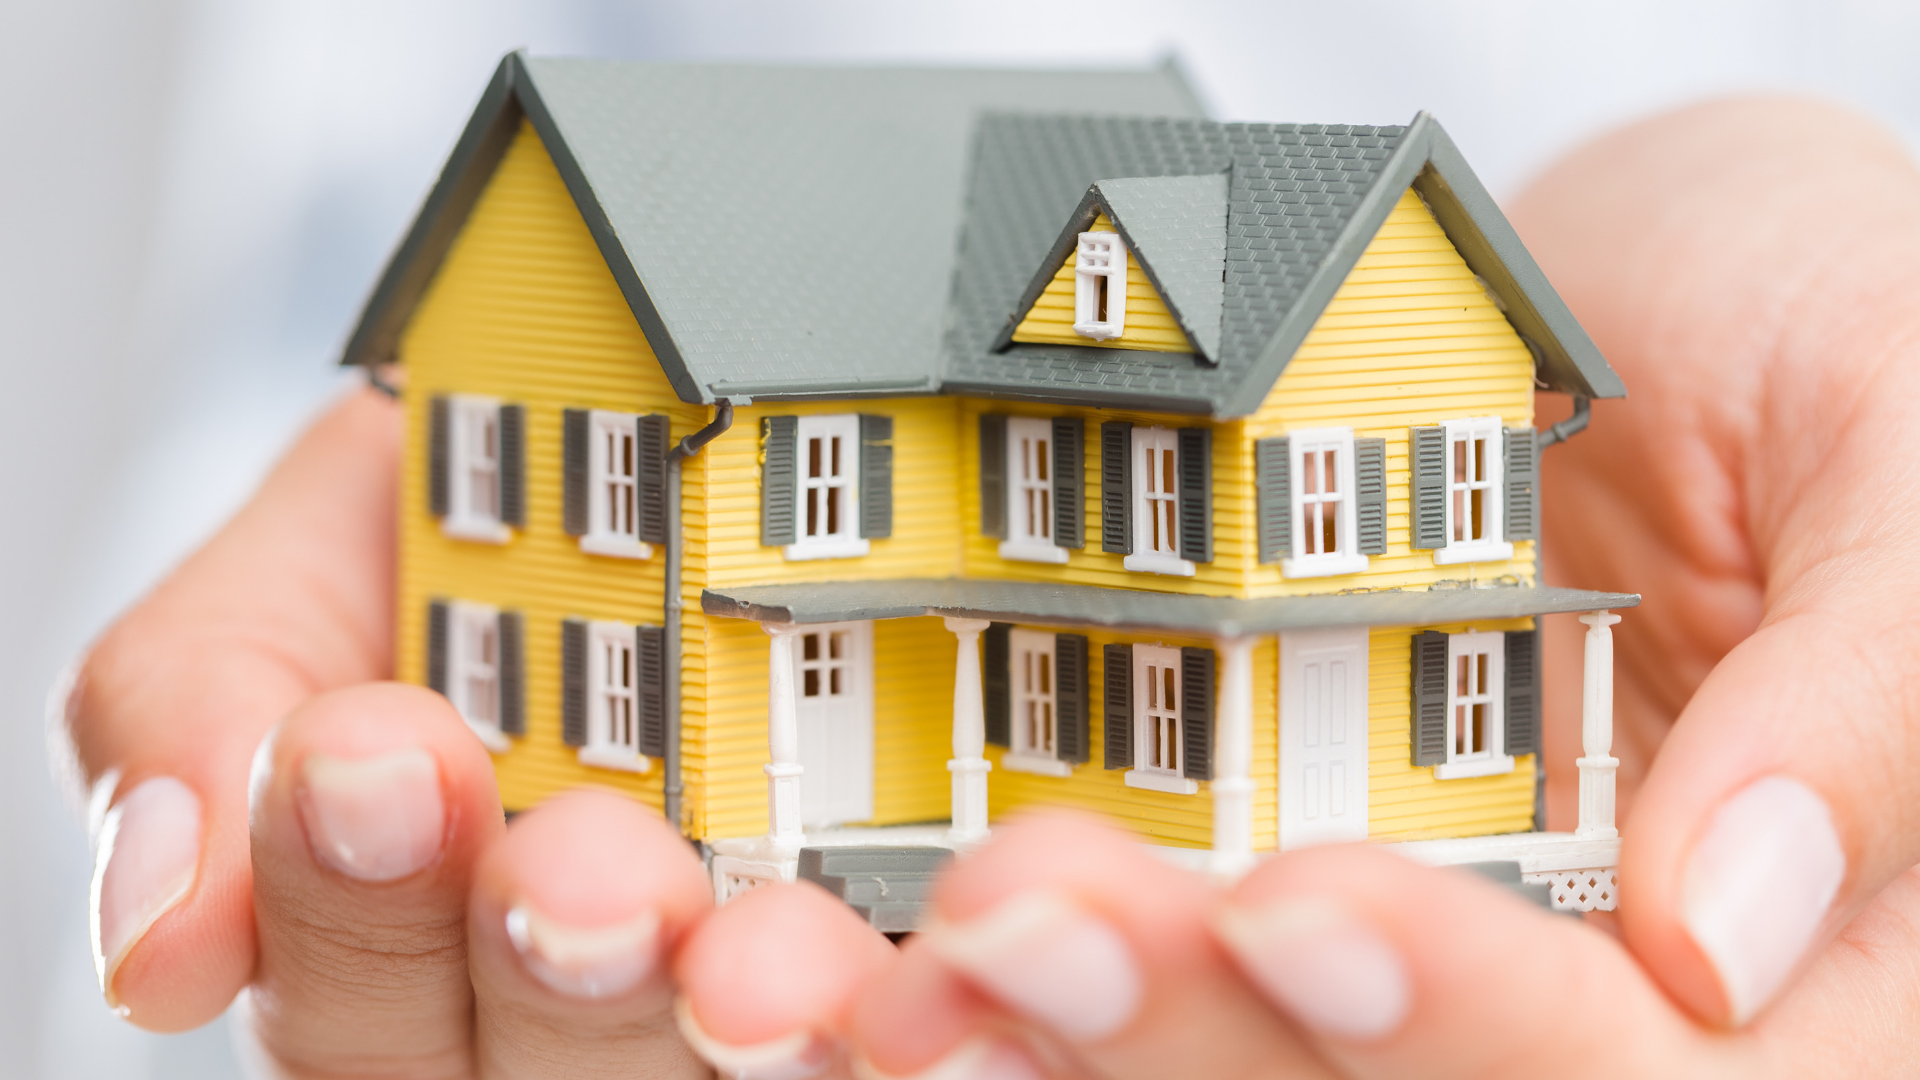 House Hunting With Tiny People